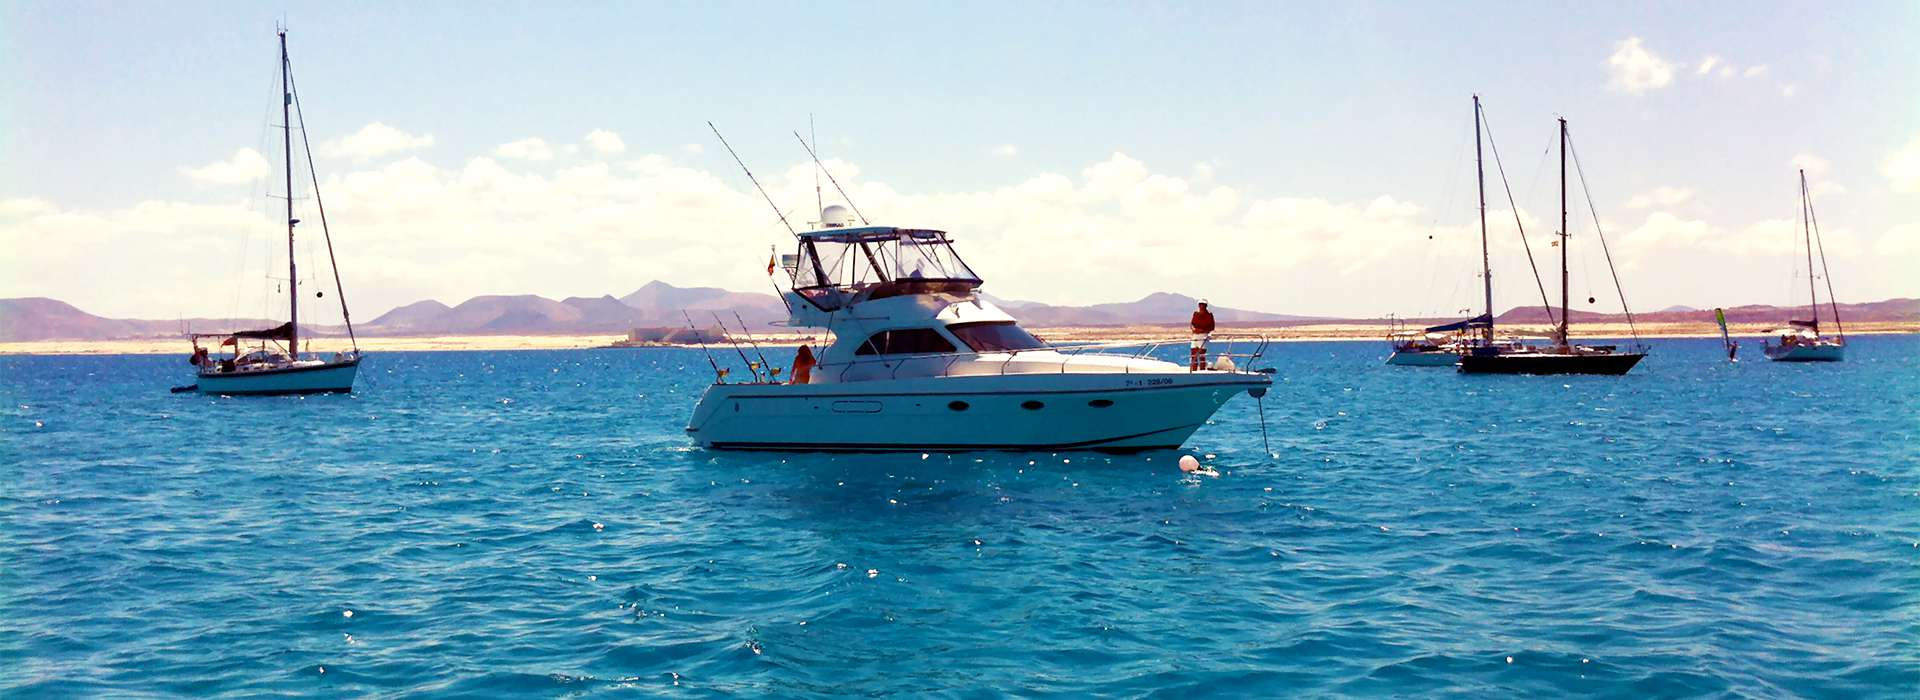 Take a fishing boat to the Isla de Lobos